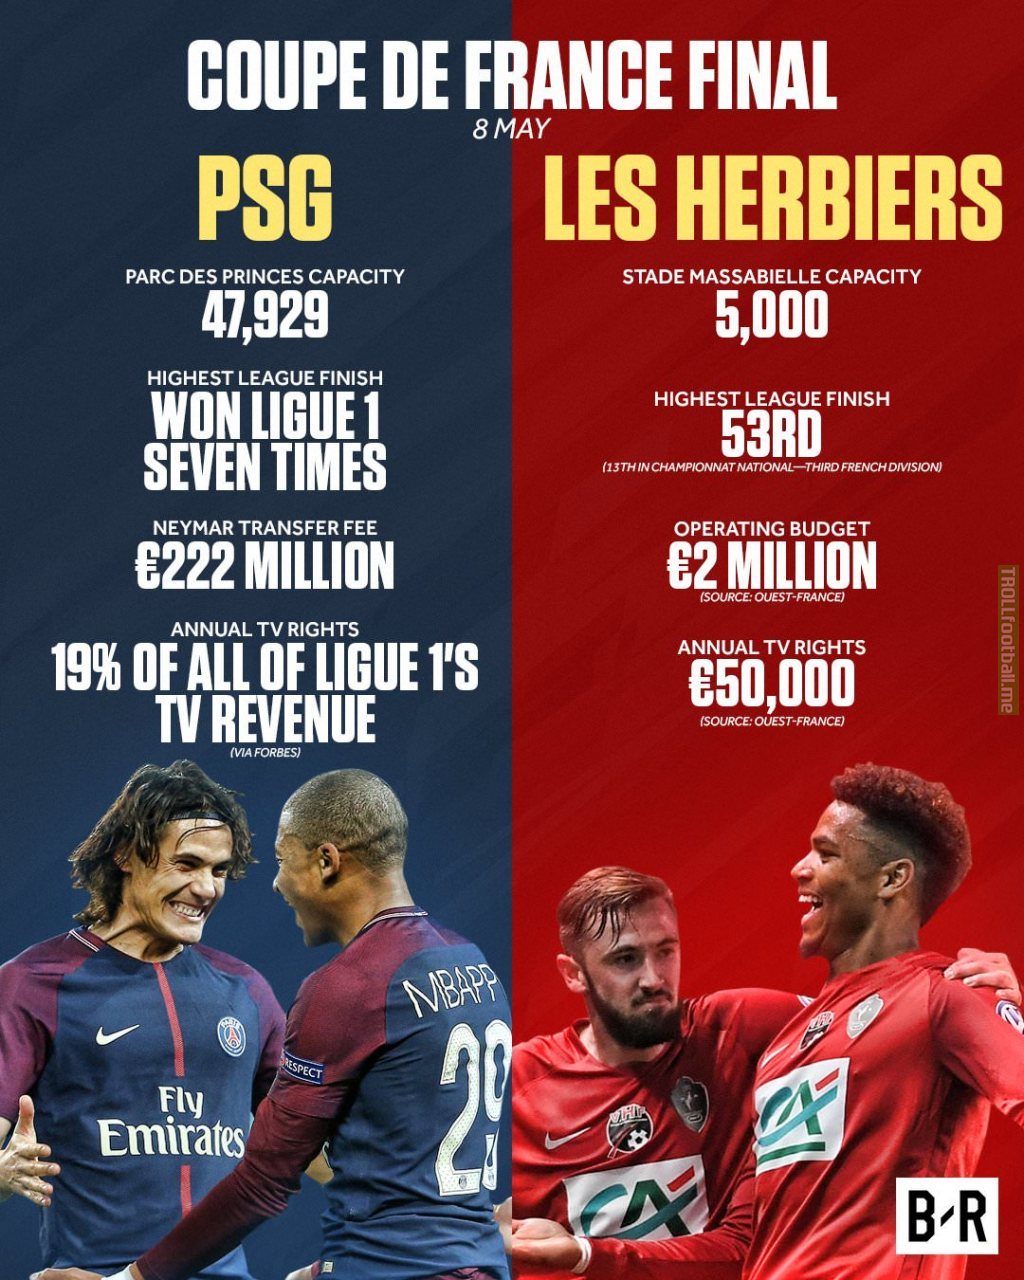 Comparisons between PSG & Les Herbiers who will play each other in the Coupe De France Final. [Source: Bleacher Report]